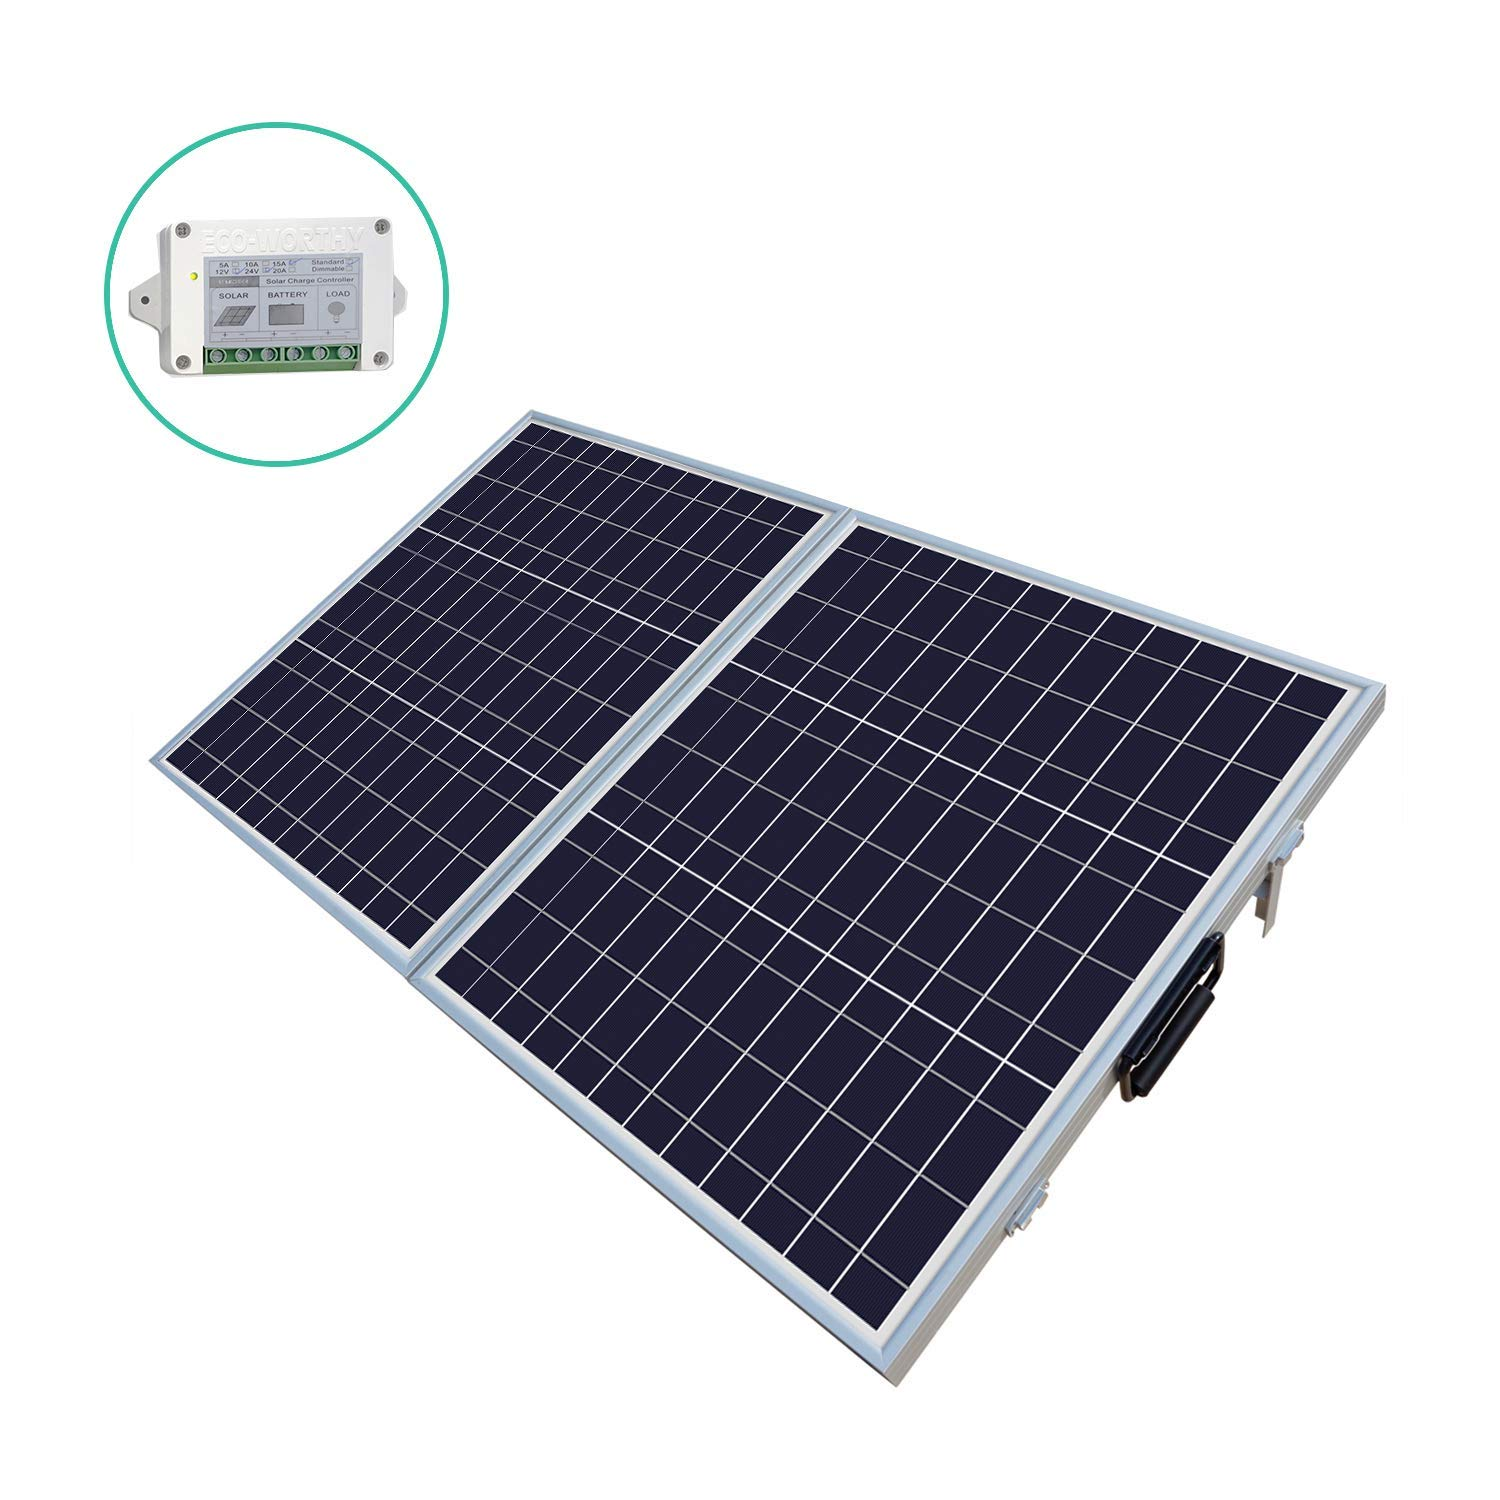 ECO-WORTHY 100 W Watt Portable Kits -100W 2x50W Folding PV Solar Panel 12V RV Boat Off Grid W 15A Charge Controller by ECO-WORTHY